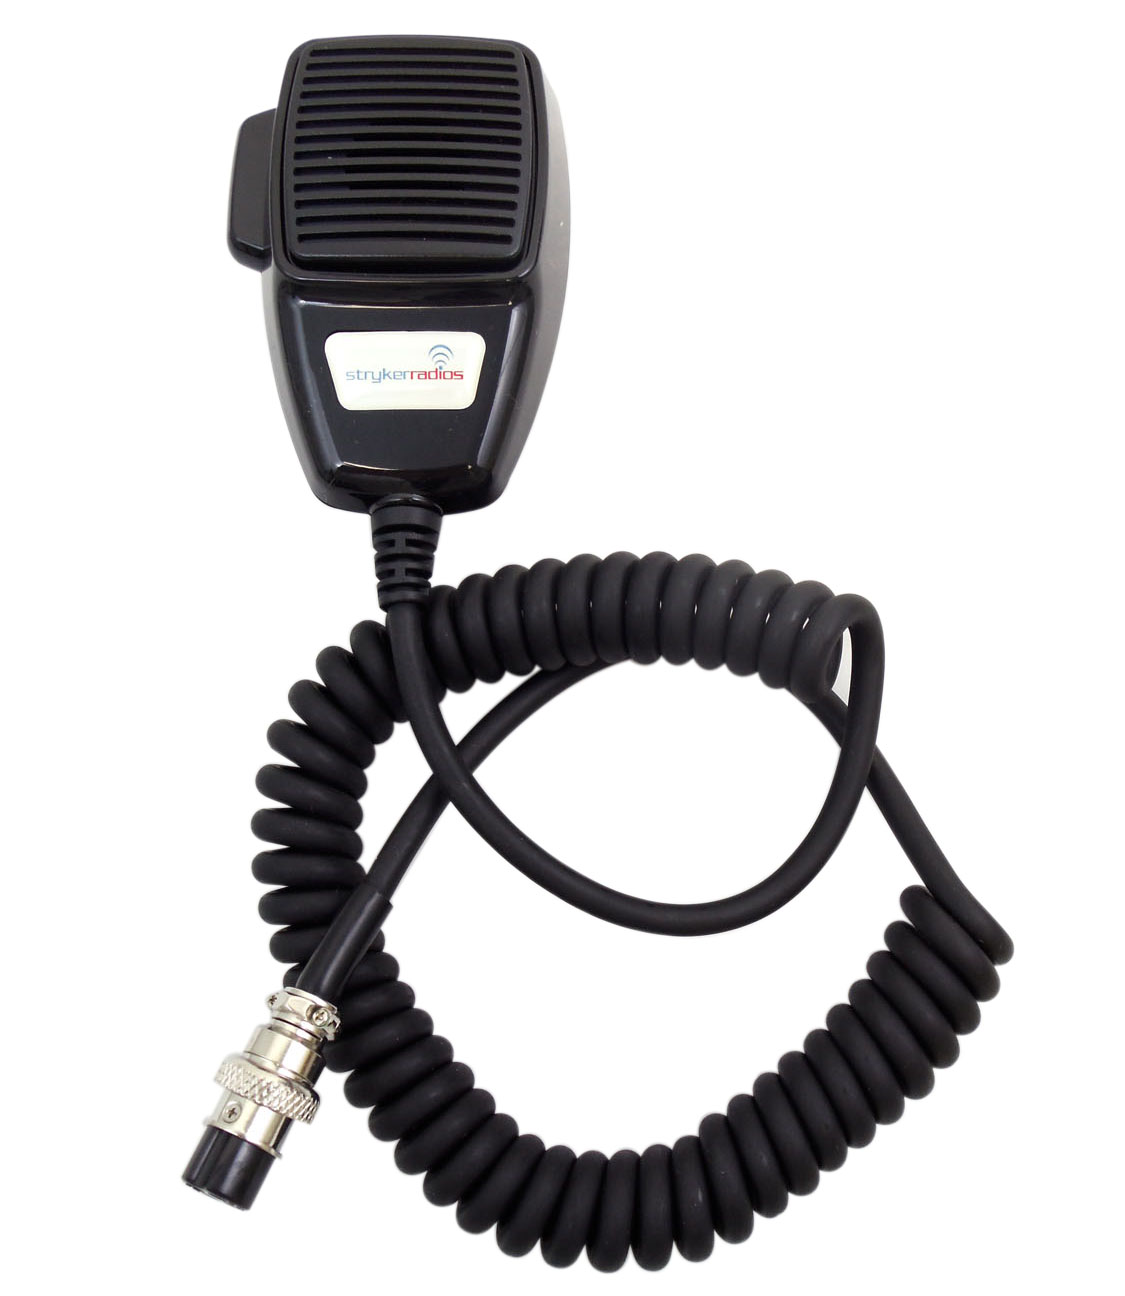 STRYKER - 4 PIN REPLACEMENT MICROPHONE FOR SR497HPC RADIO